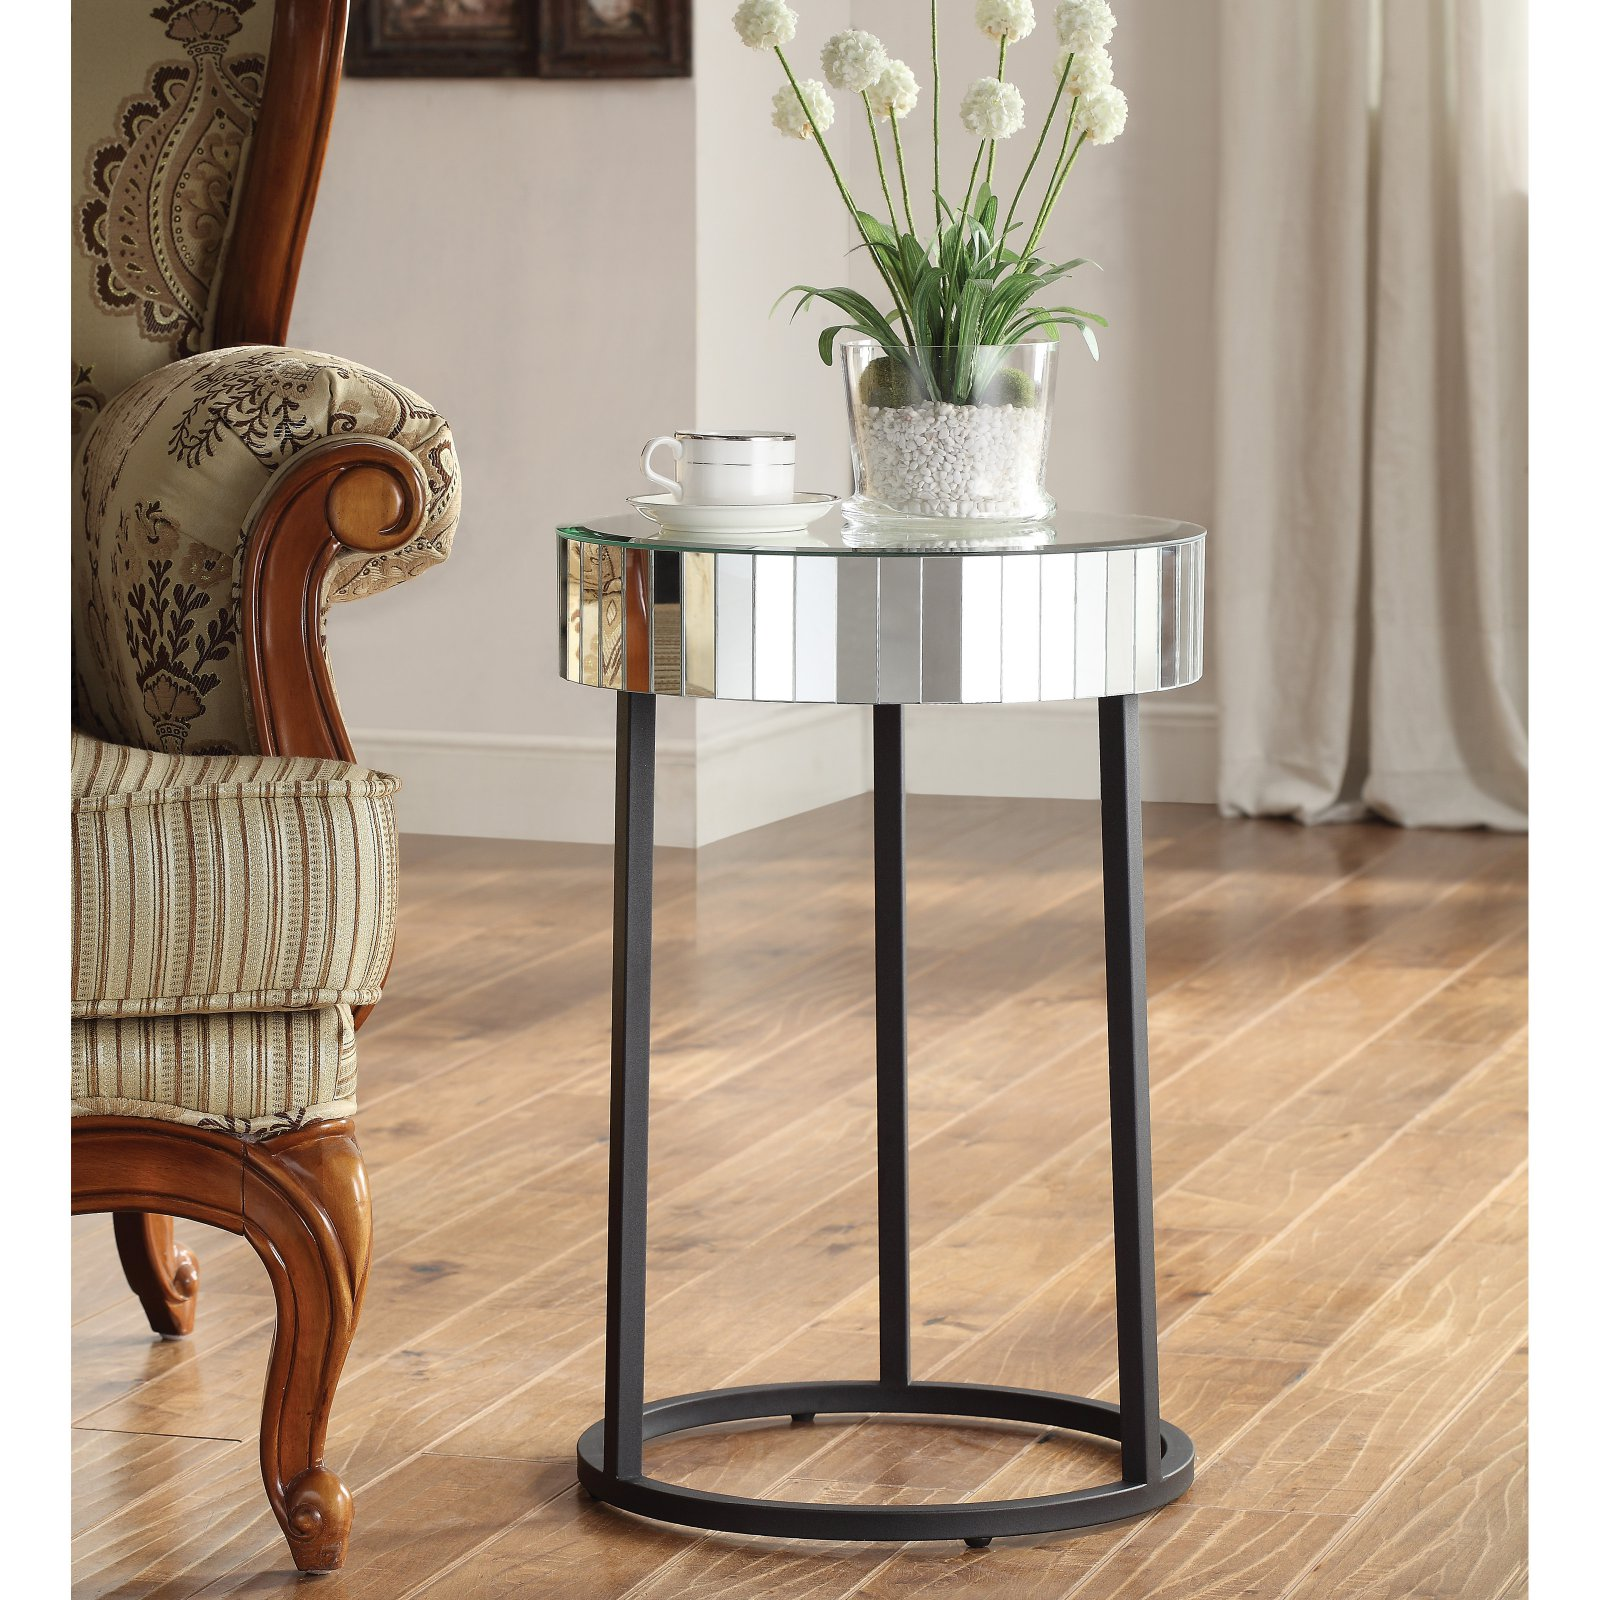 OSP Designs Krystal Round Mirror Accent Table with Metal Legs Fully Assembled by Office Star Products